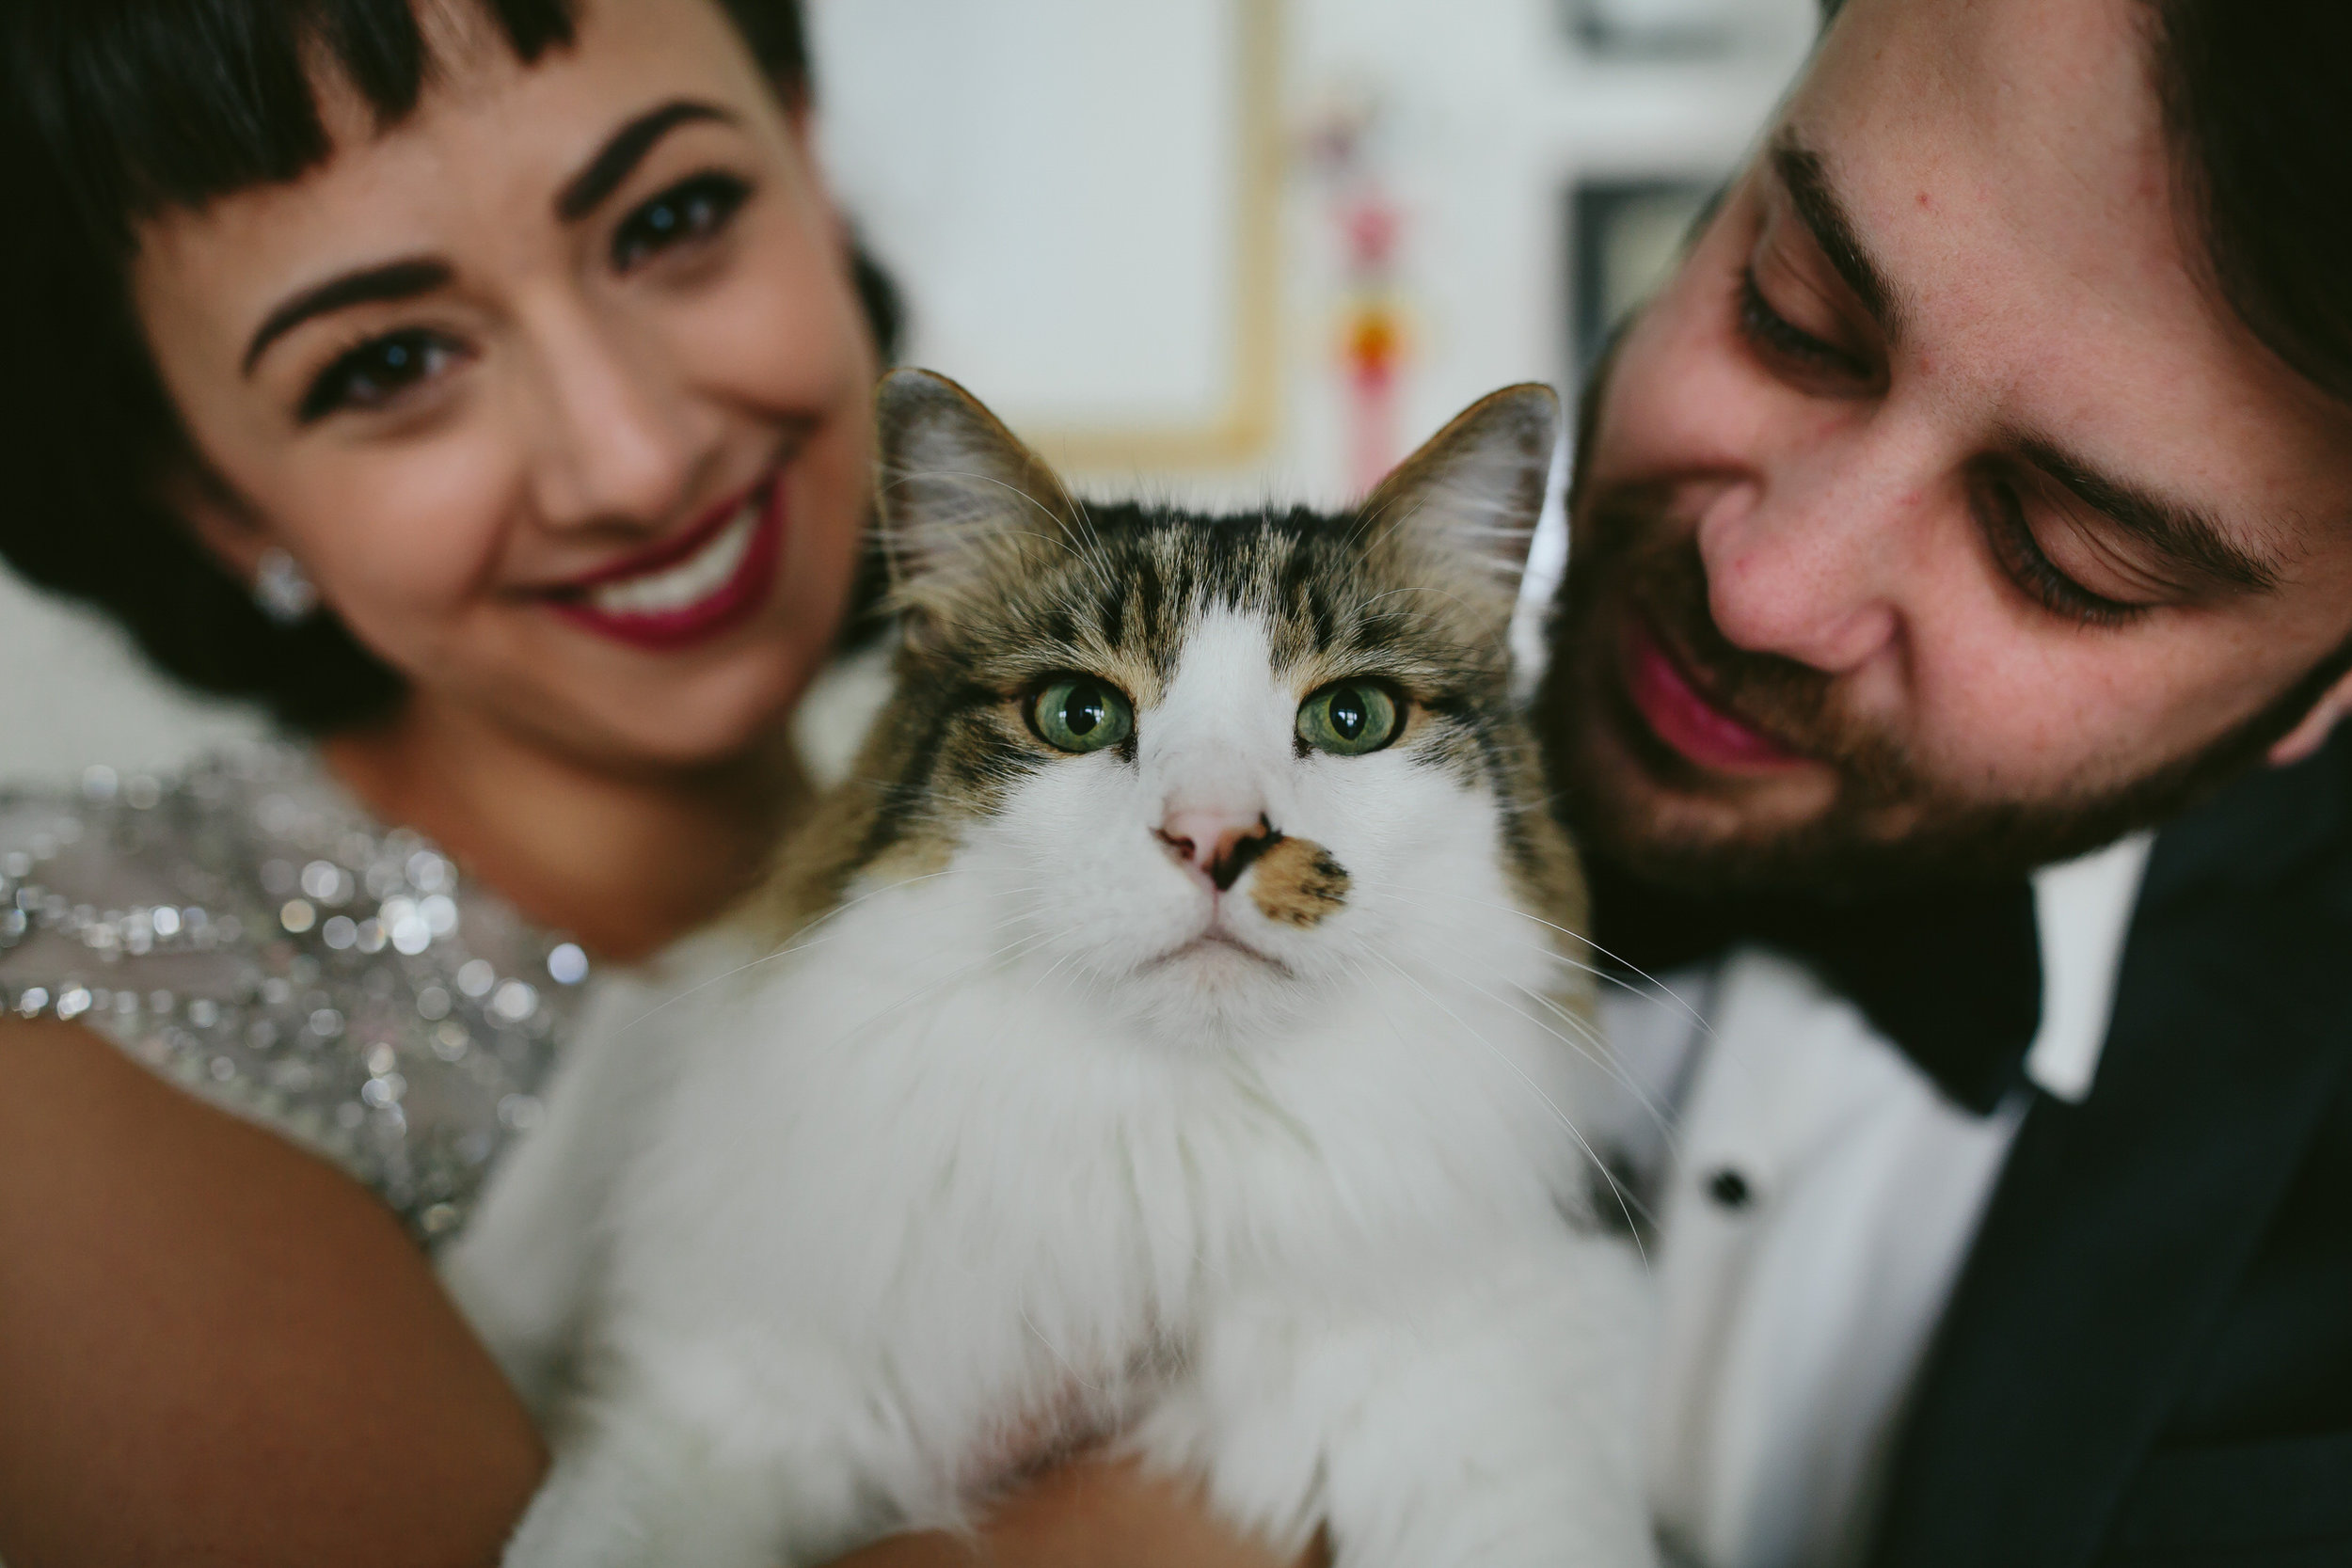 bride_and_groom_cats_in_home_session_wedding_fort_lauderdale_photographer_steph_lynn_photo-68.jpg